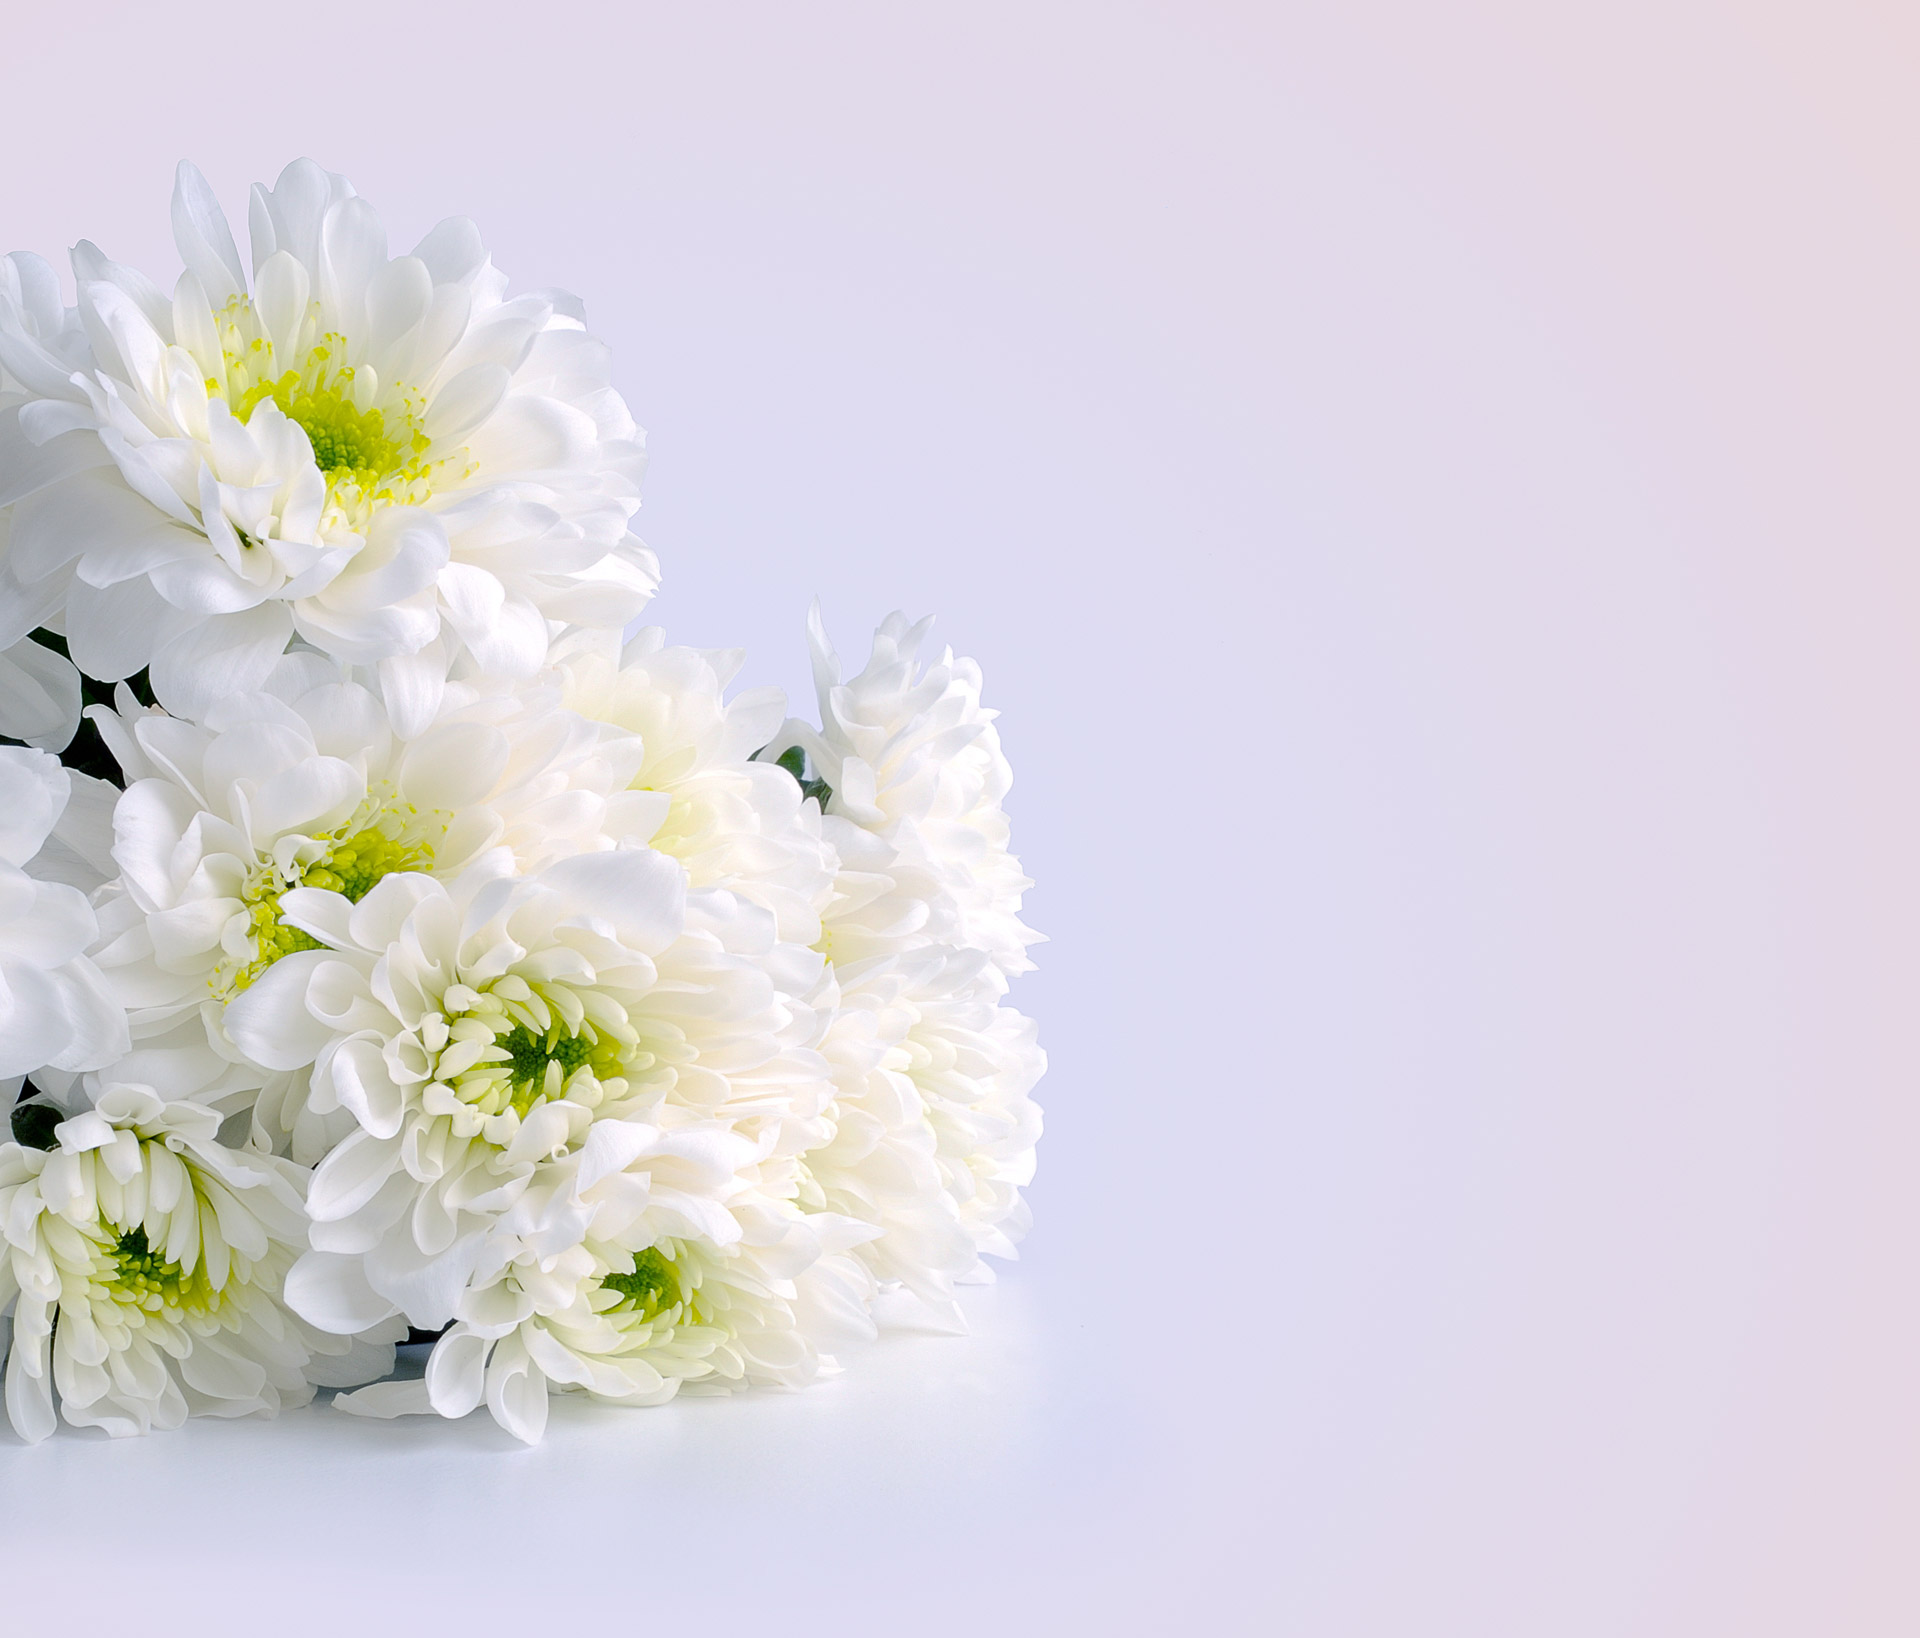 White Flowers For The Holiday Free Stock Photo - Public Domain Pictures